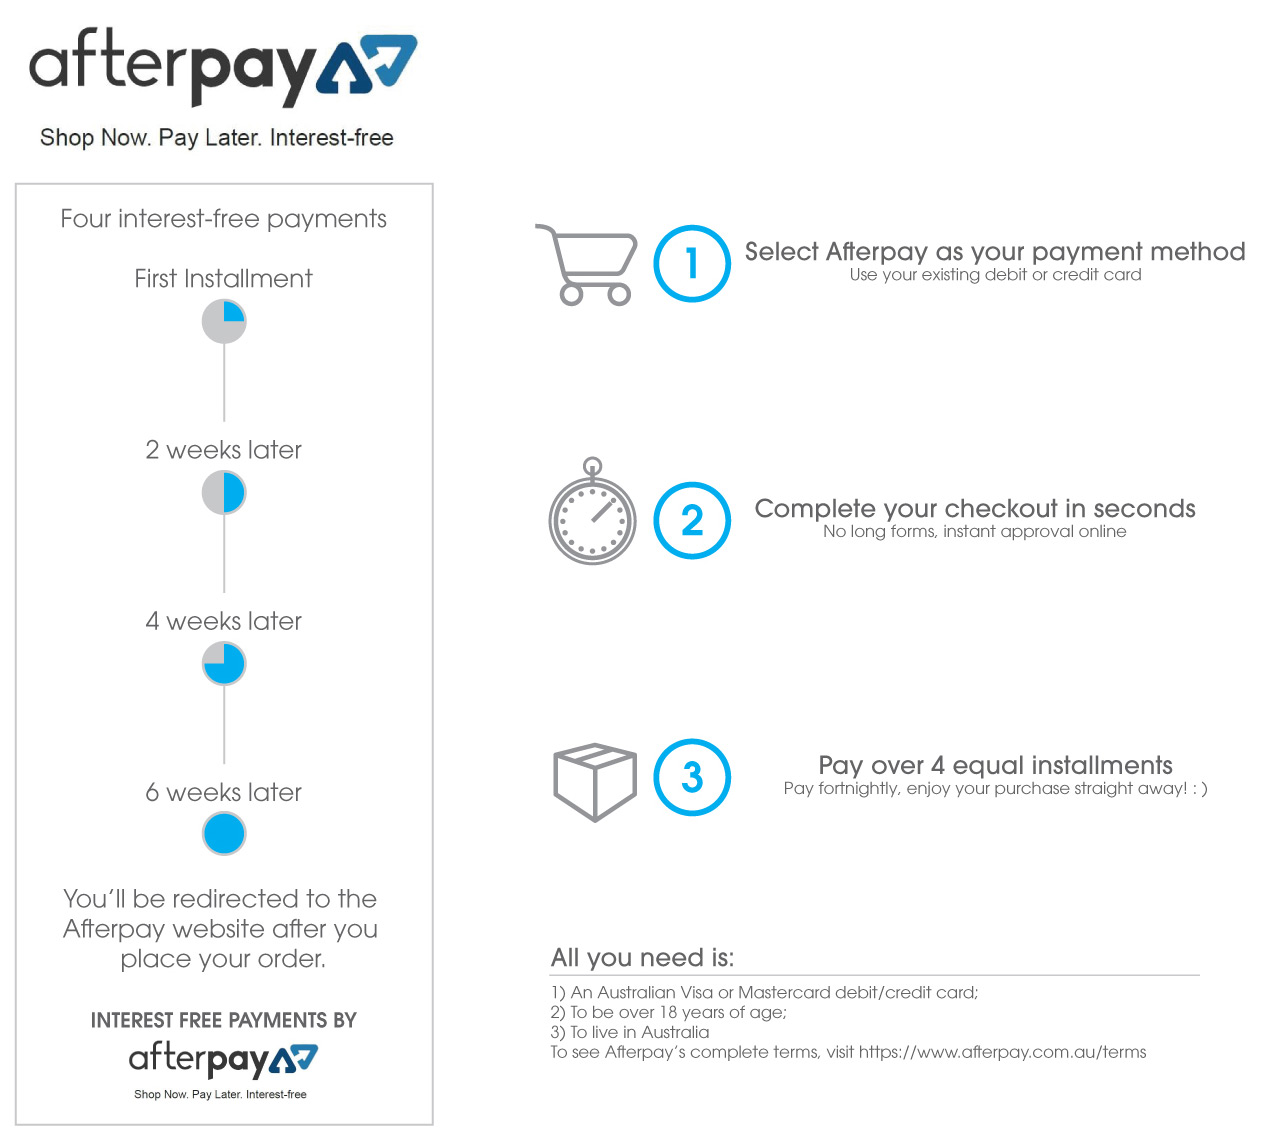 afterpay-content-page.jpg